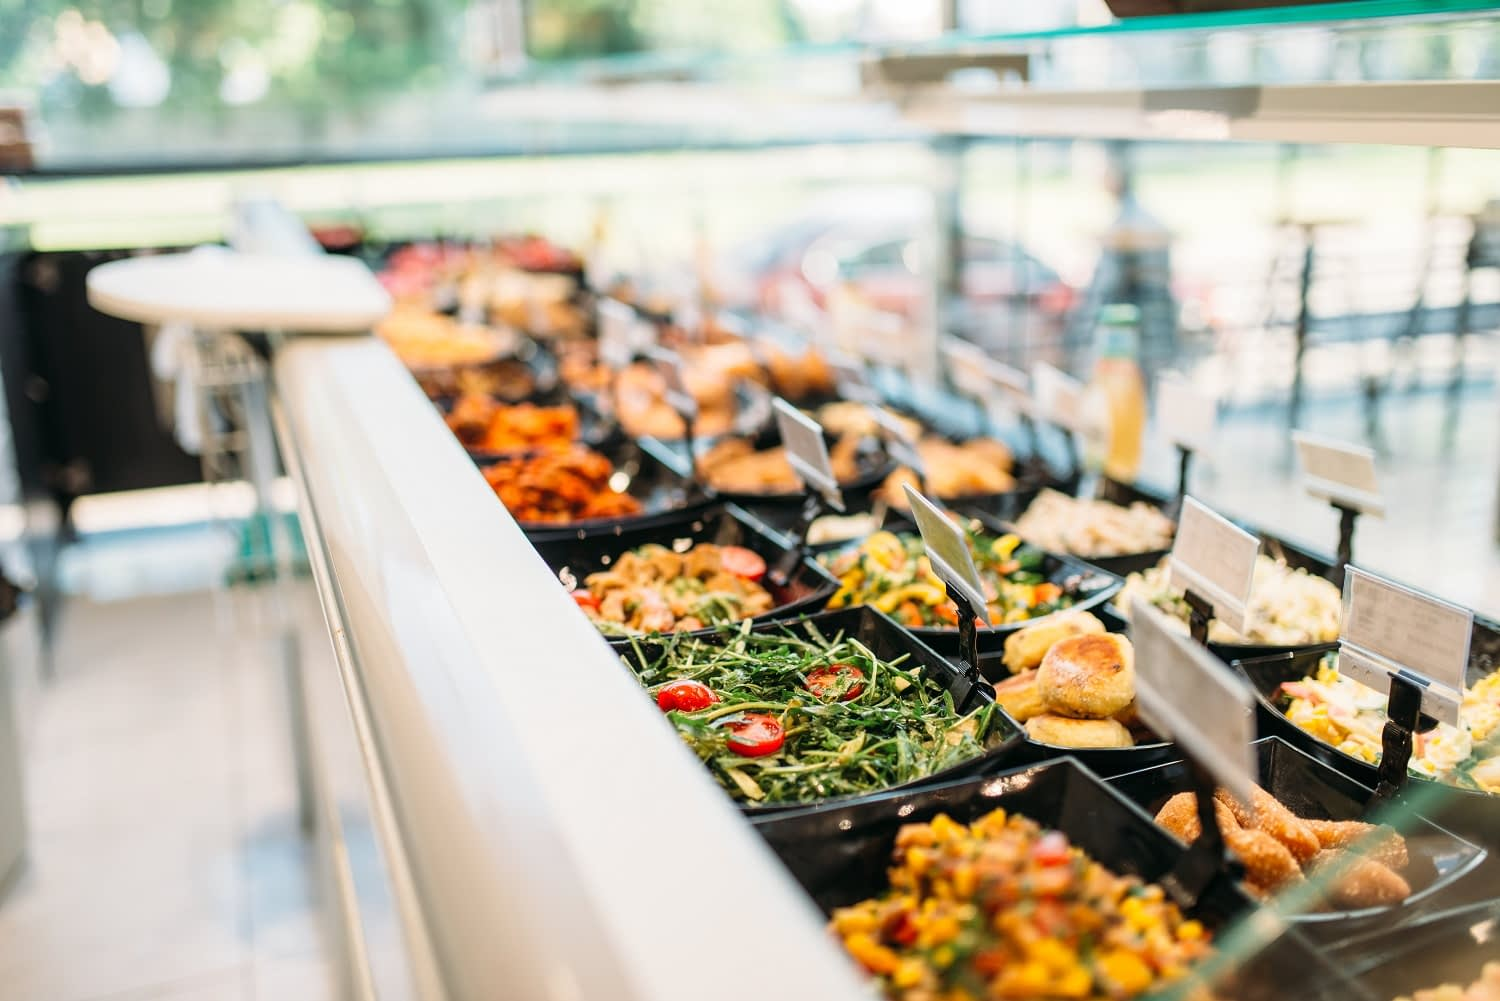 Fully stocked grocery store buffet